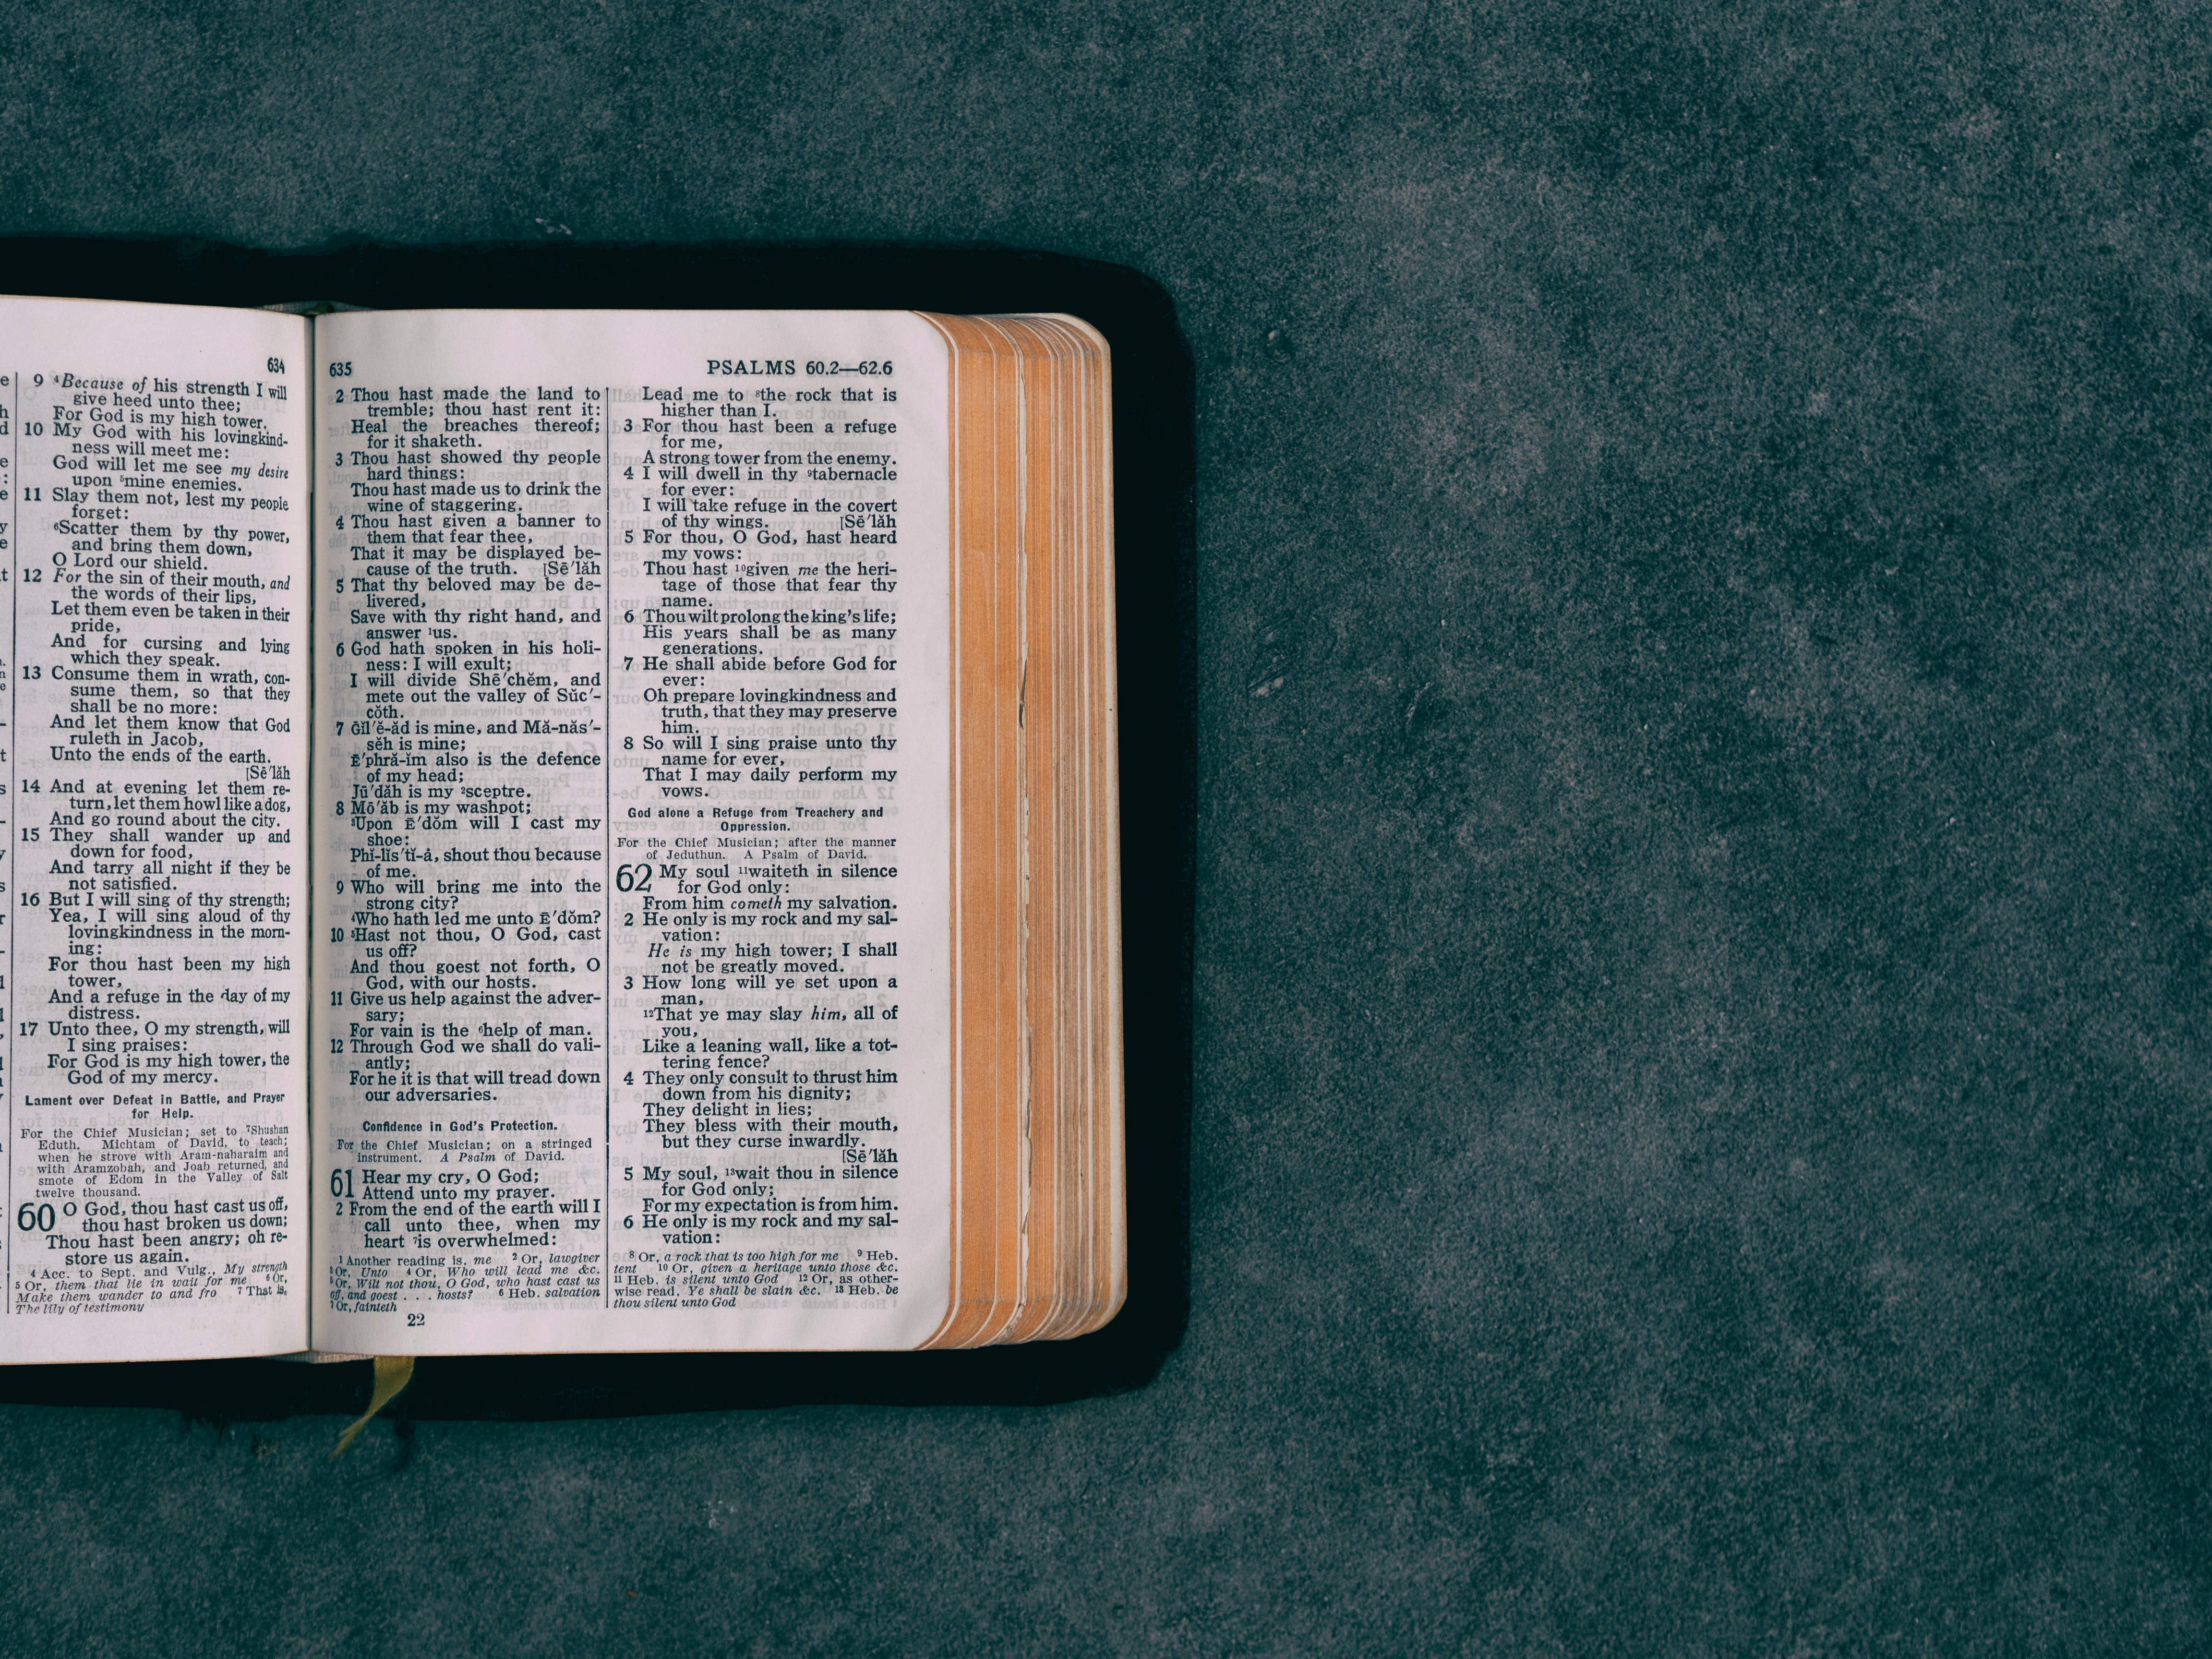 Bible distribution plans double in 2020